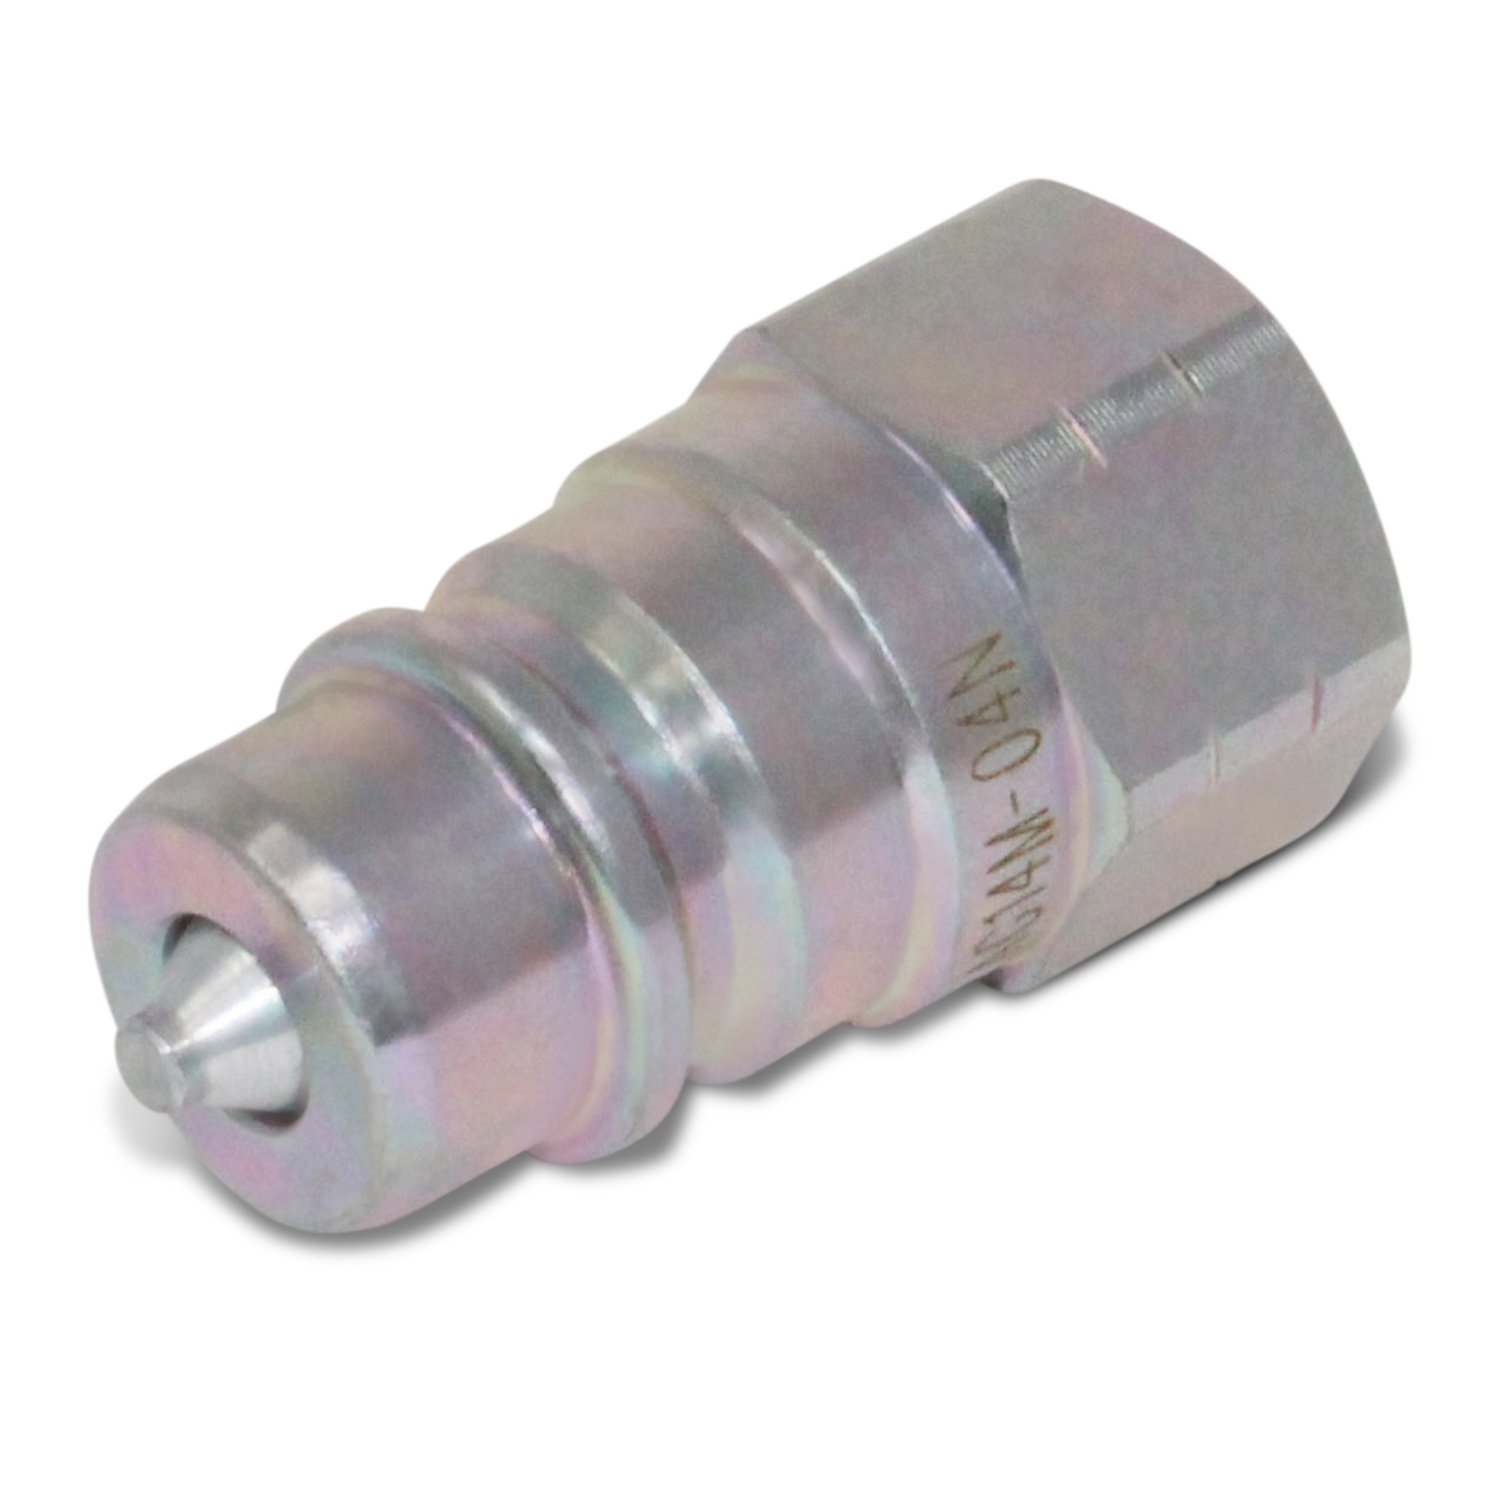 "1//4/"" NPT Thread 1//4/"" Ag ISO 5675 Hydraulic Quick Connect Pioneer Style Couplers 2 Sets"